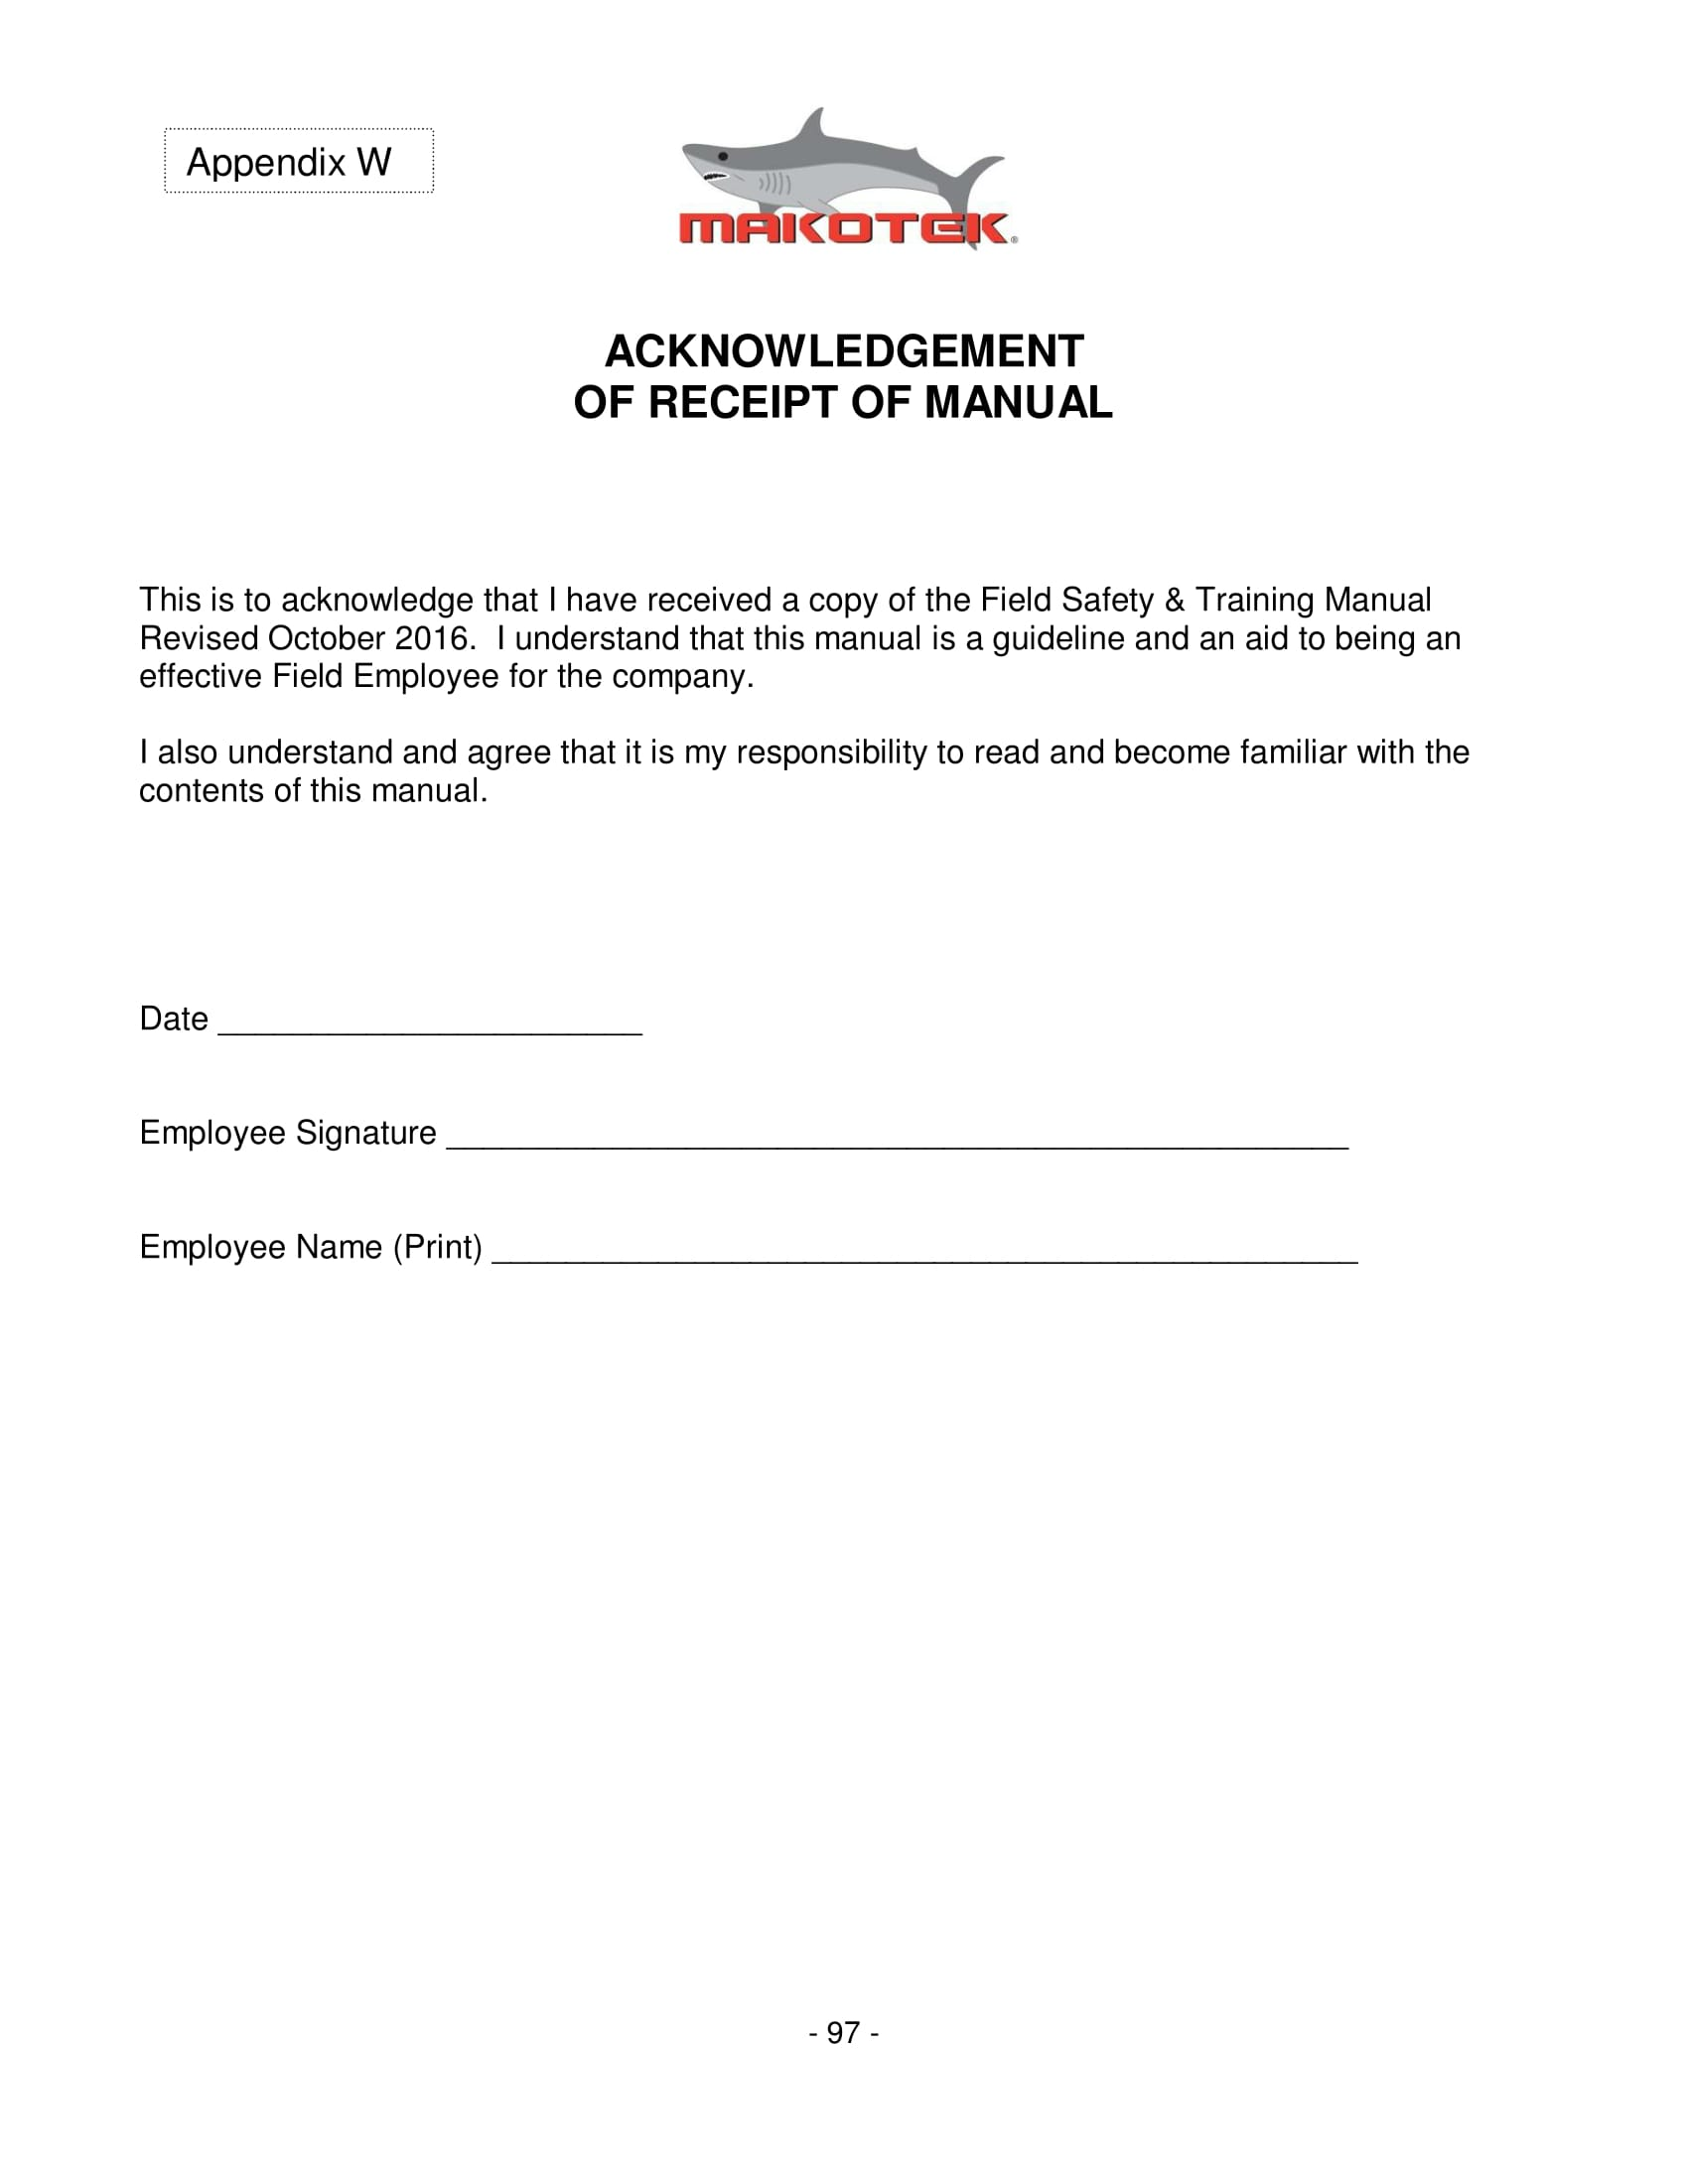 employee manual receipt acknowledgement form 1